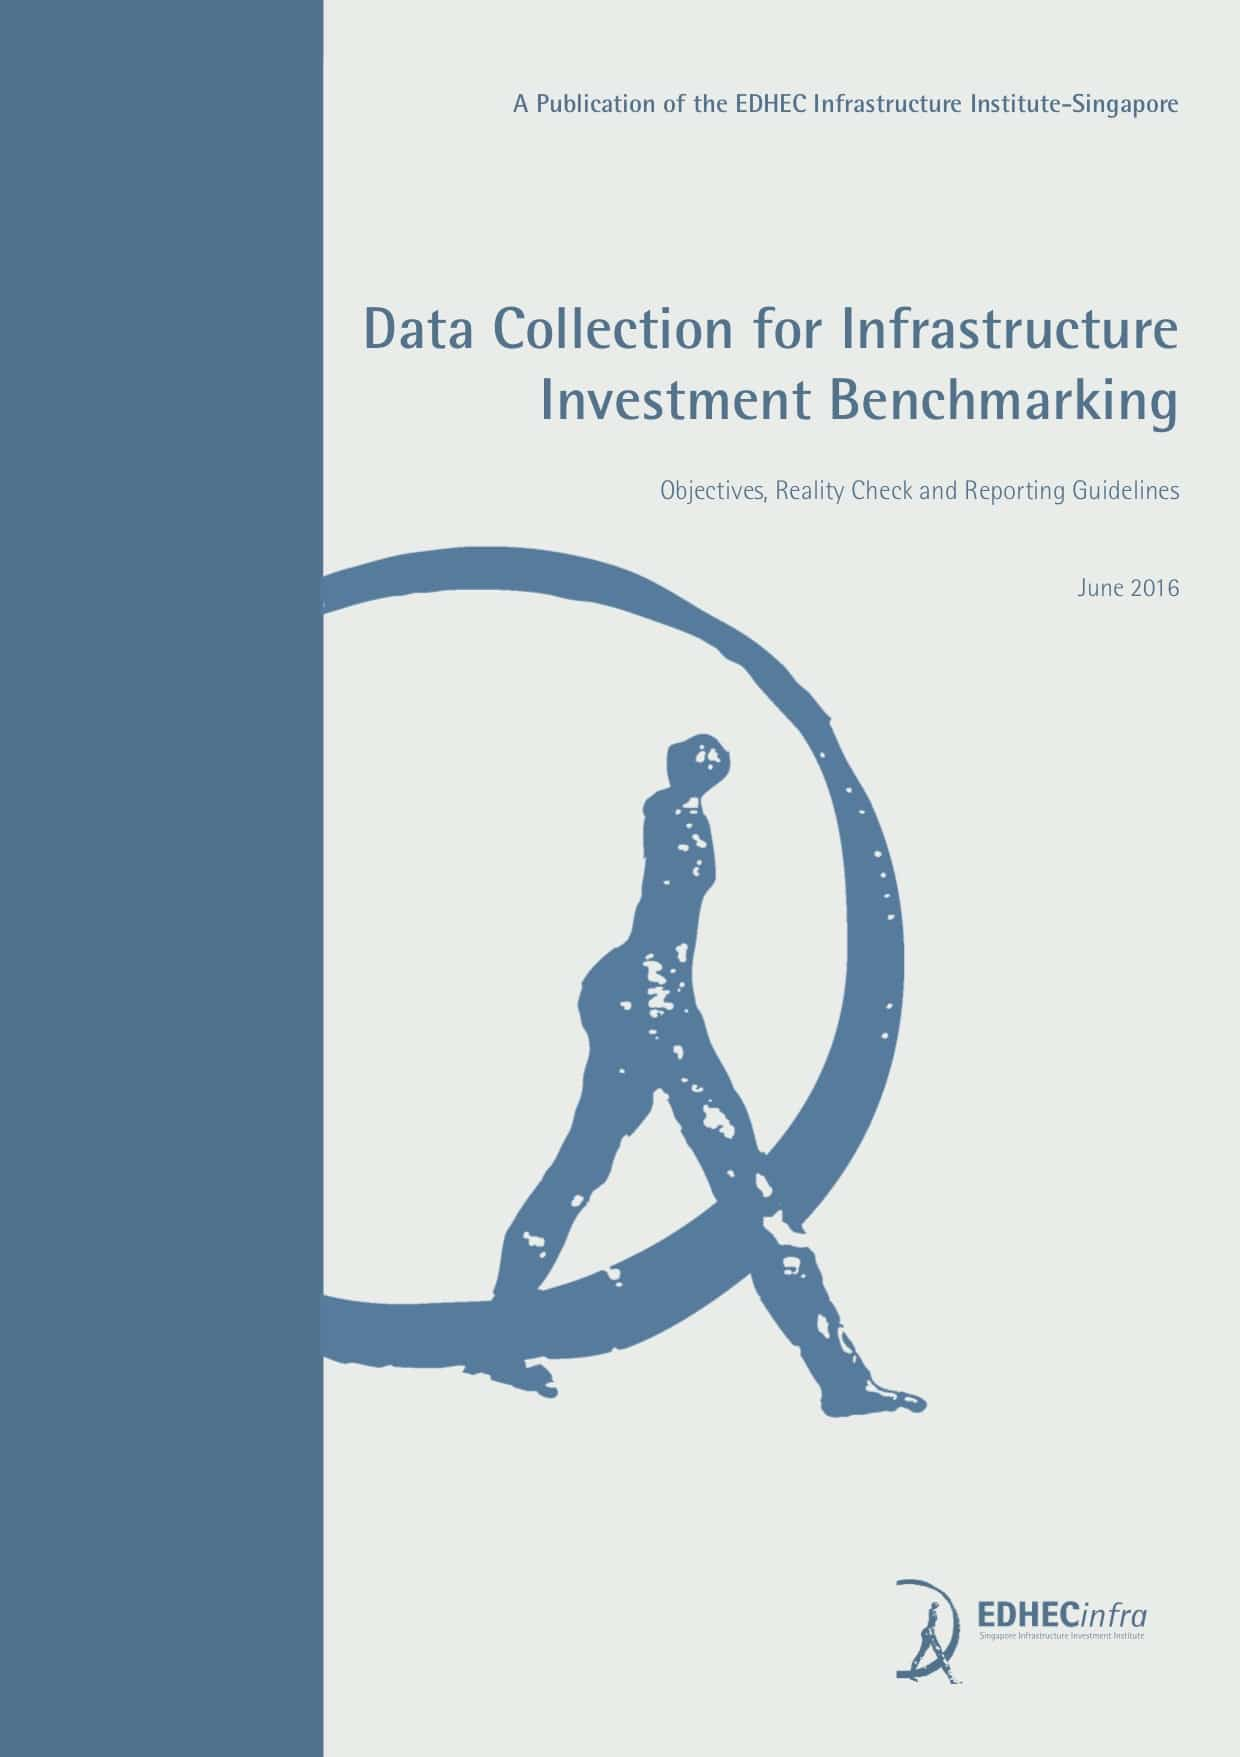 Data collection for infrastructure benchmarking